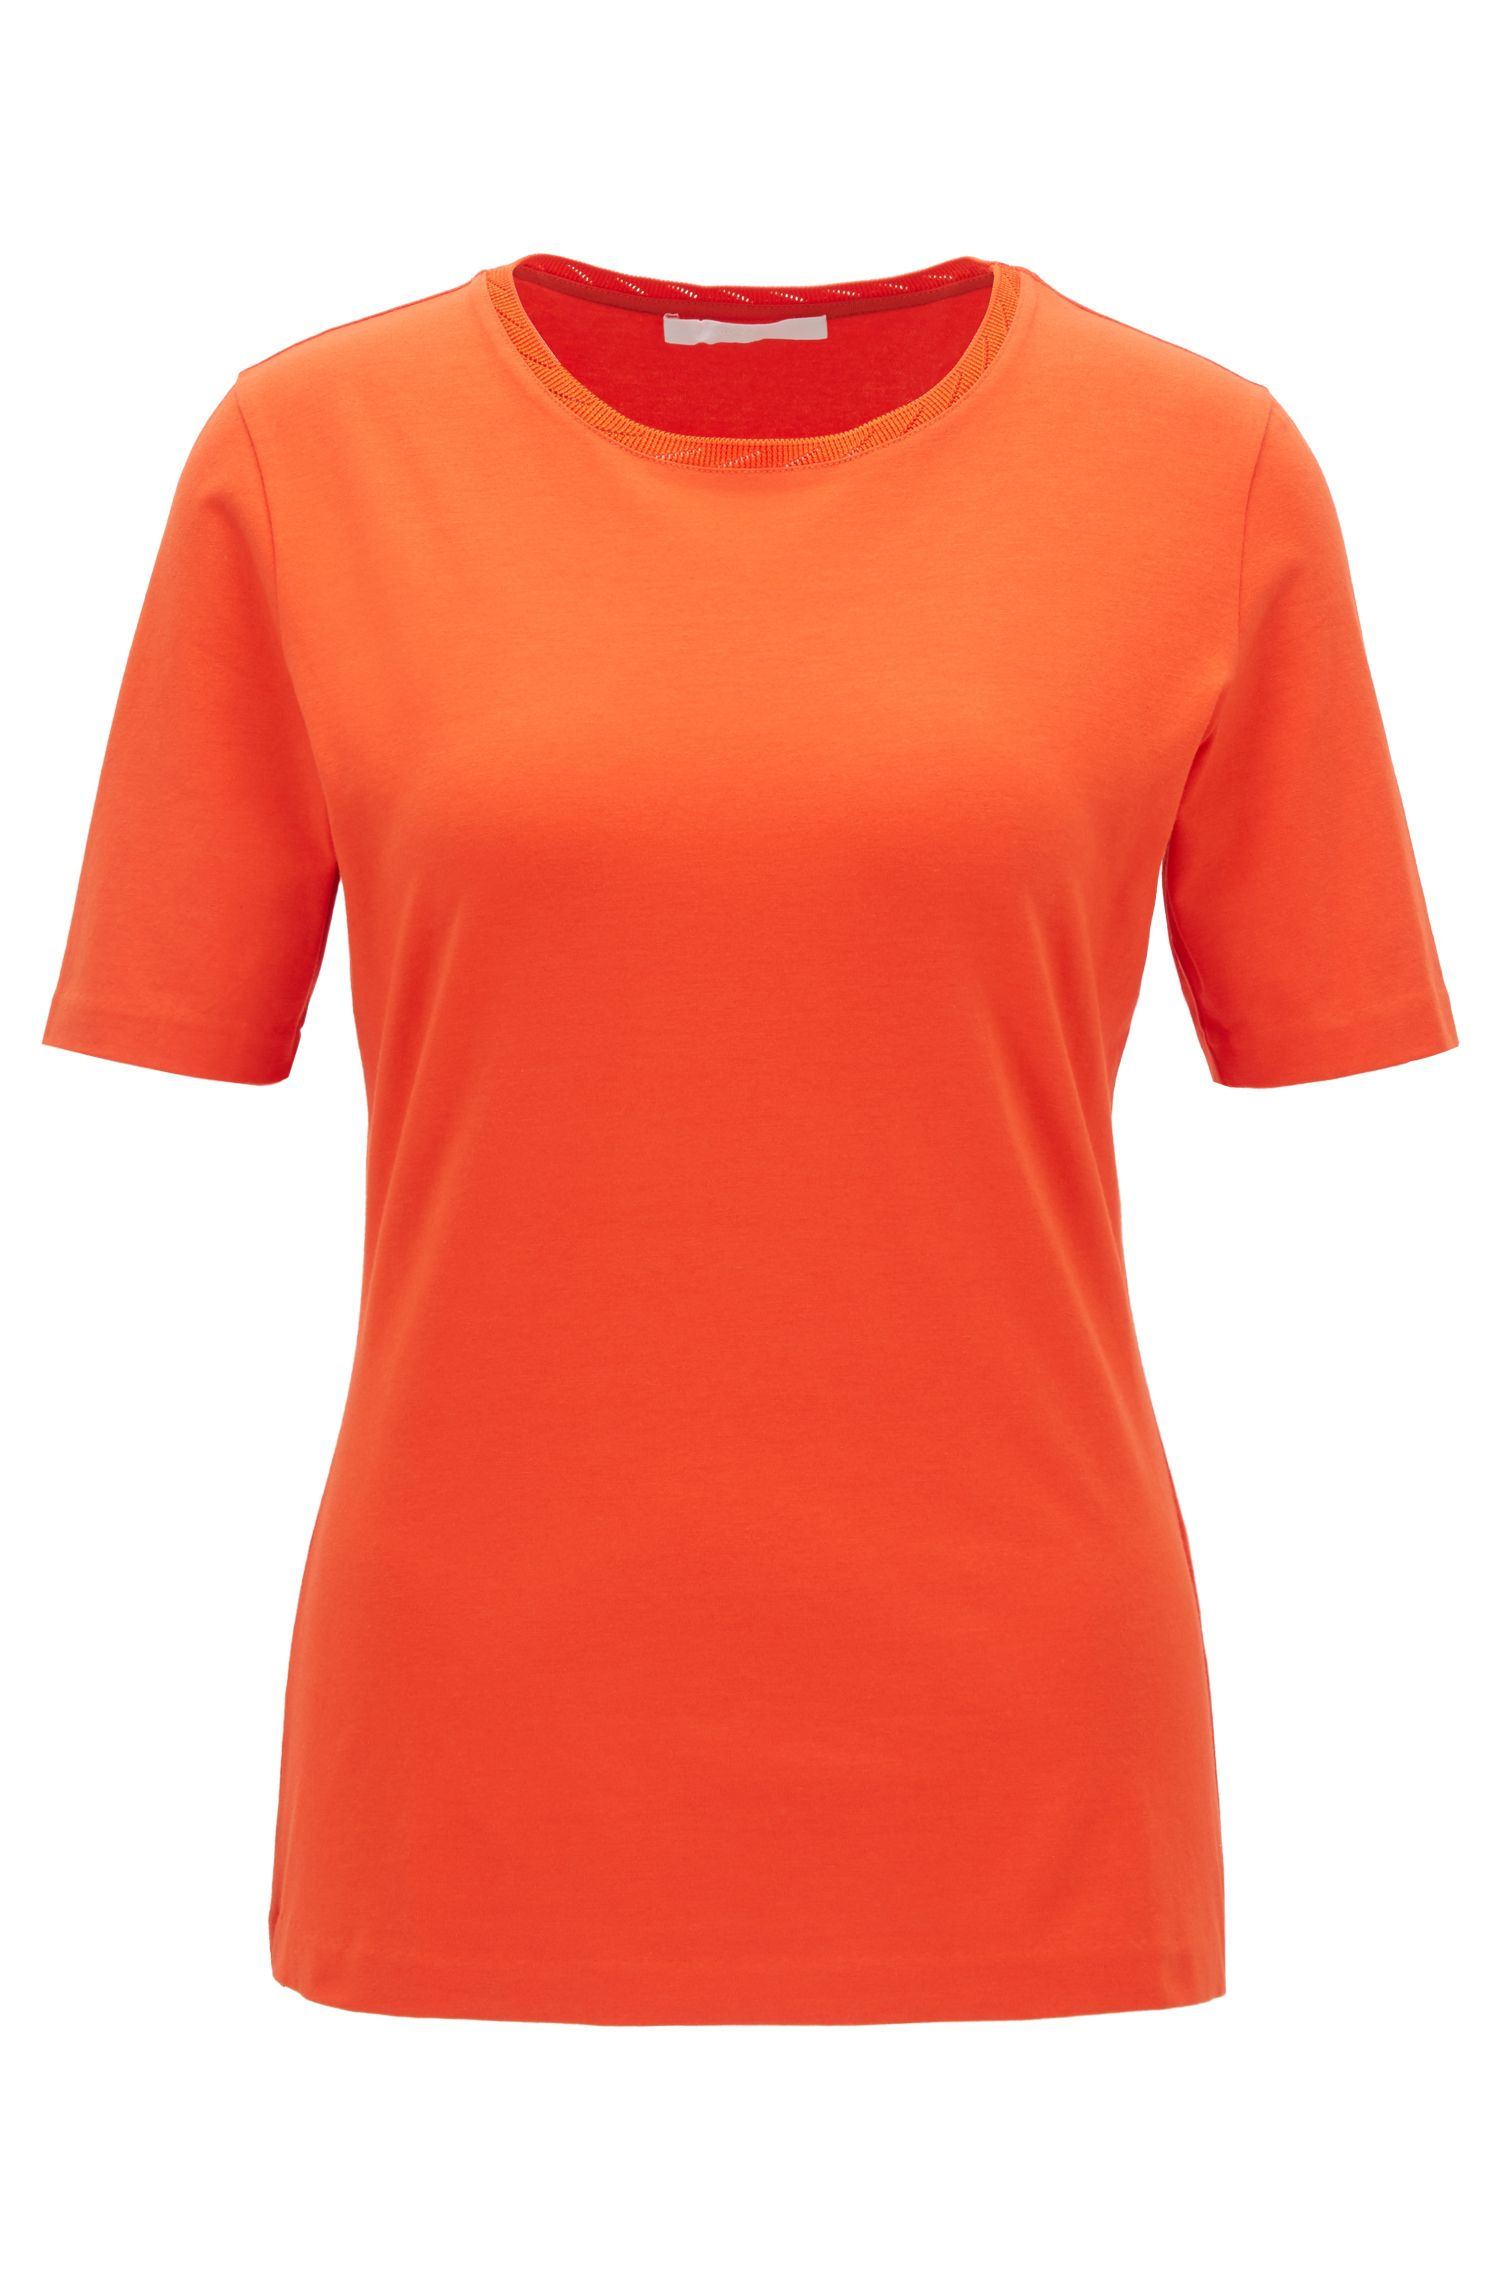 Regular-fit crew-neck top in stretch jersey